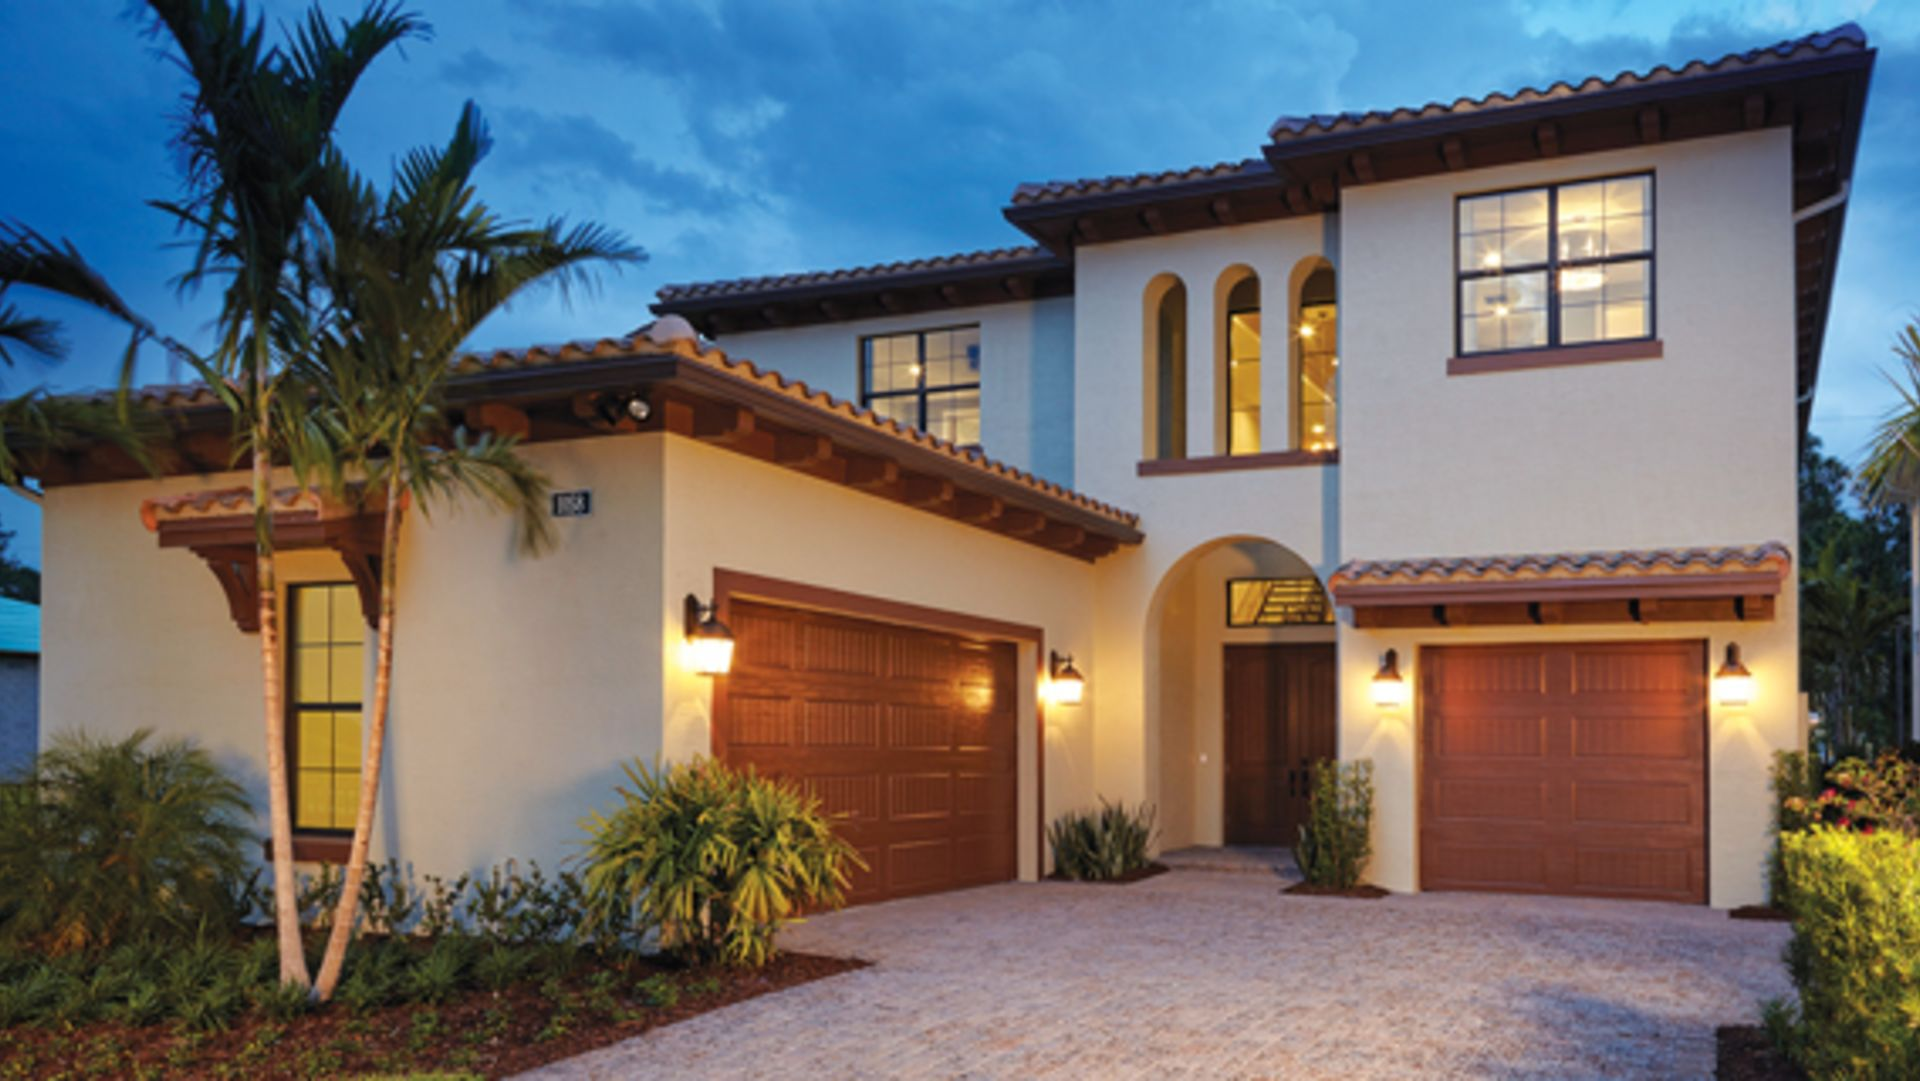 Lack of land puts the squeeze on SoFla's homebuilders